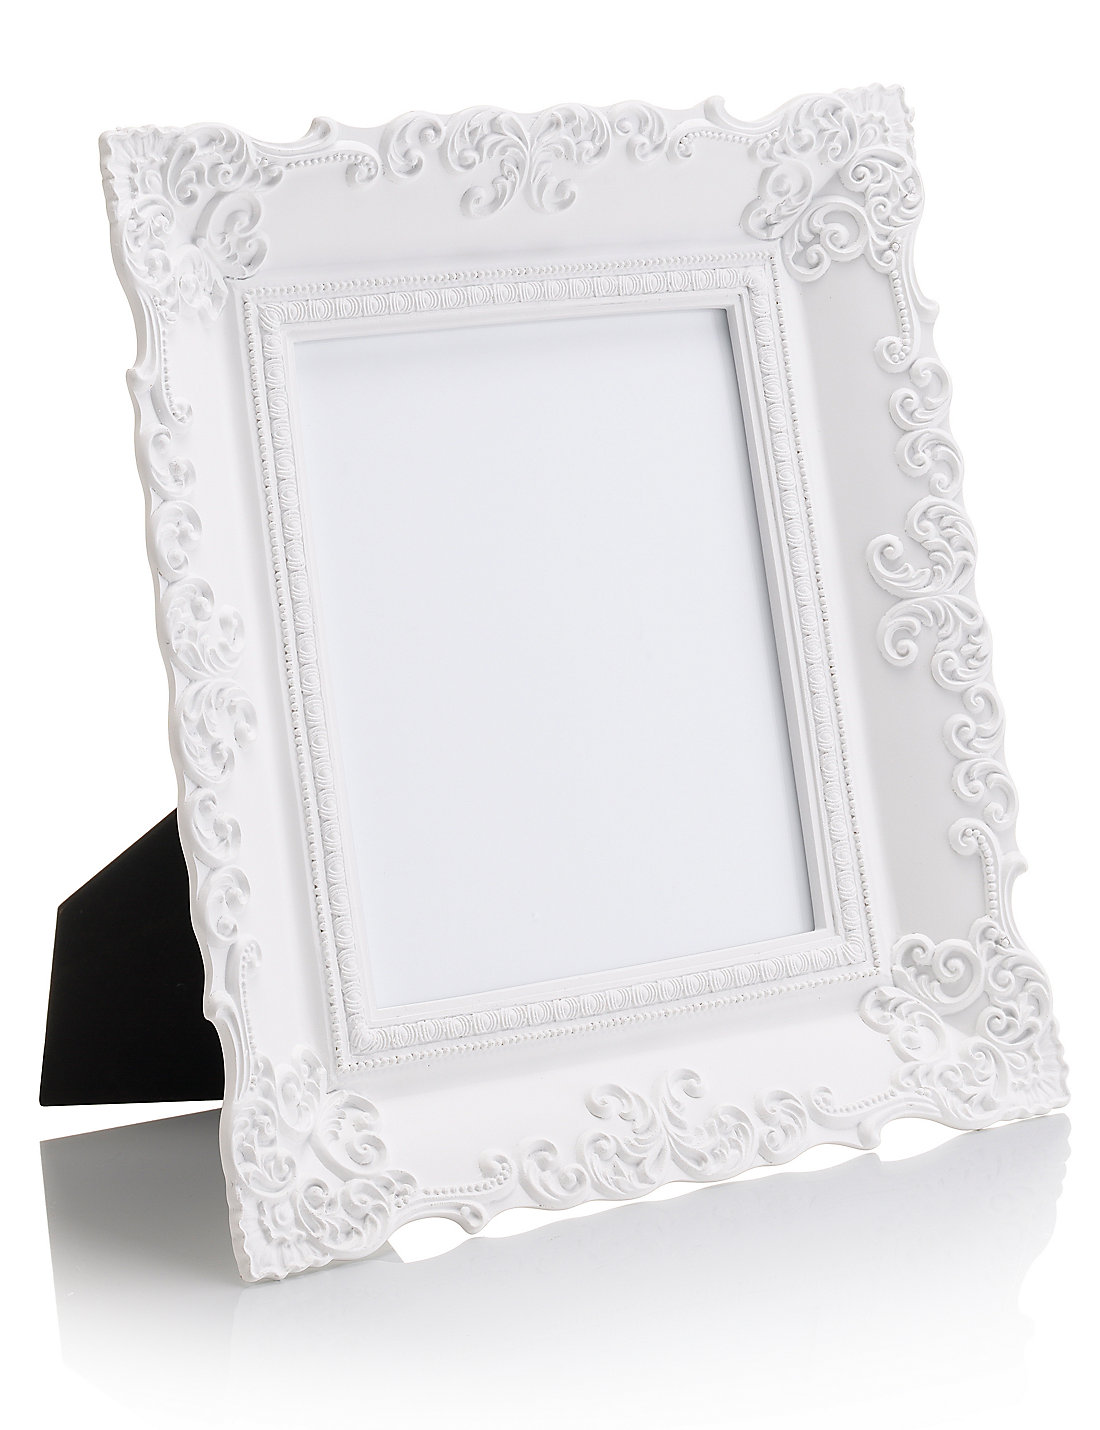 Perfect Baroque Picture Frames 8x10 Motif - Ideas de Marcos ...